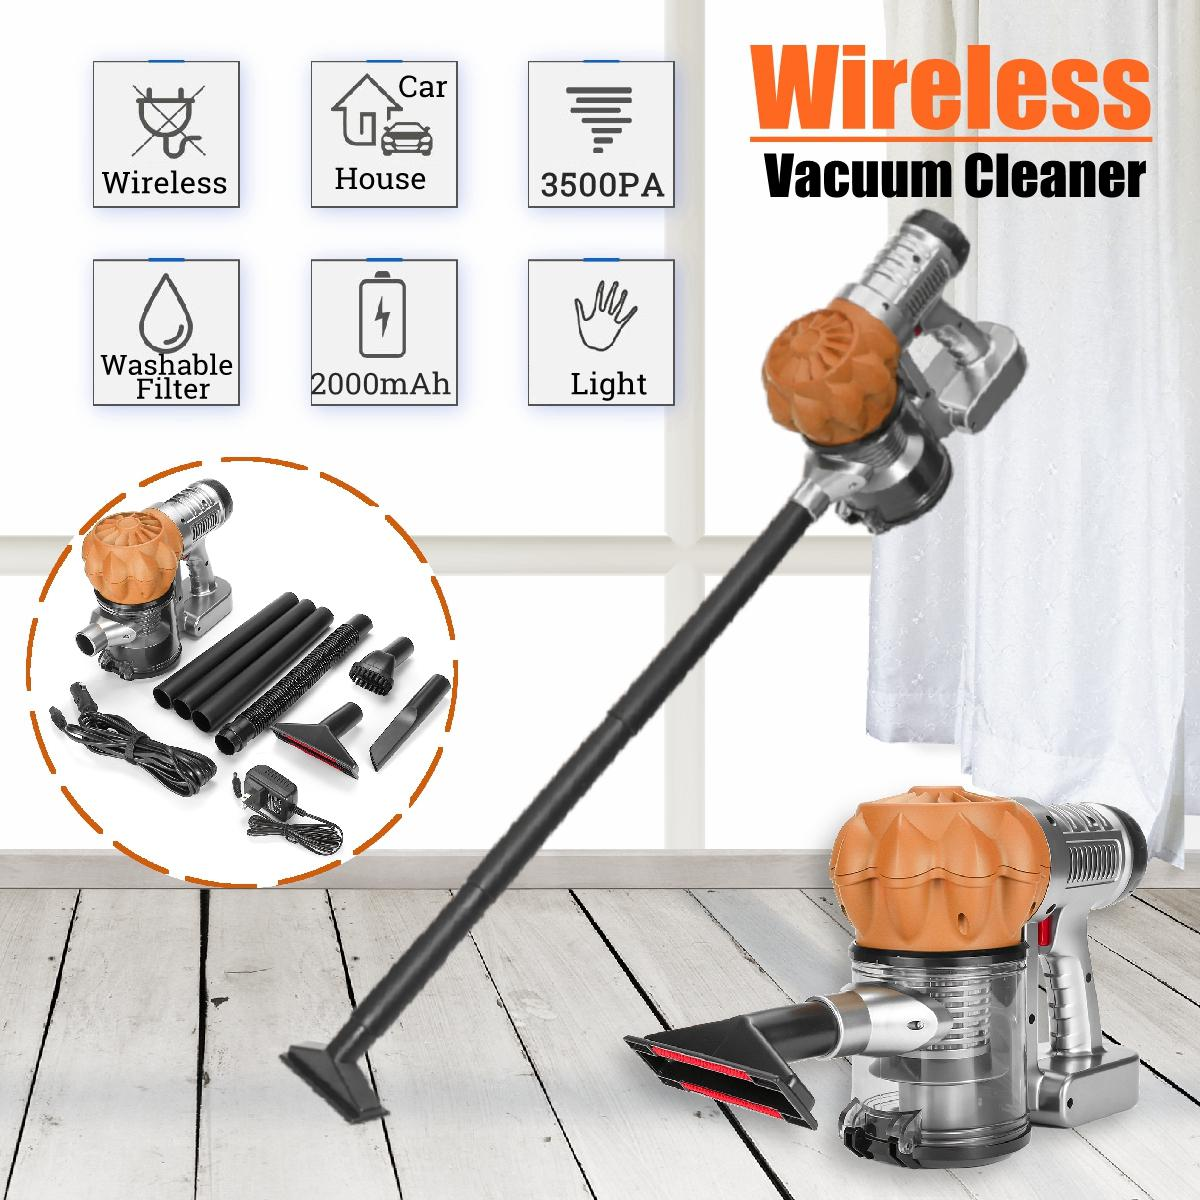 Gold Wireless Vacuum Cleaner Home Charging Handheld Upright For Car, Room, Floor Cleaning Tool 100W